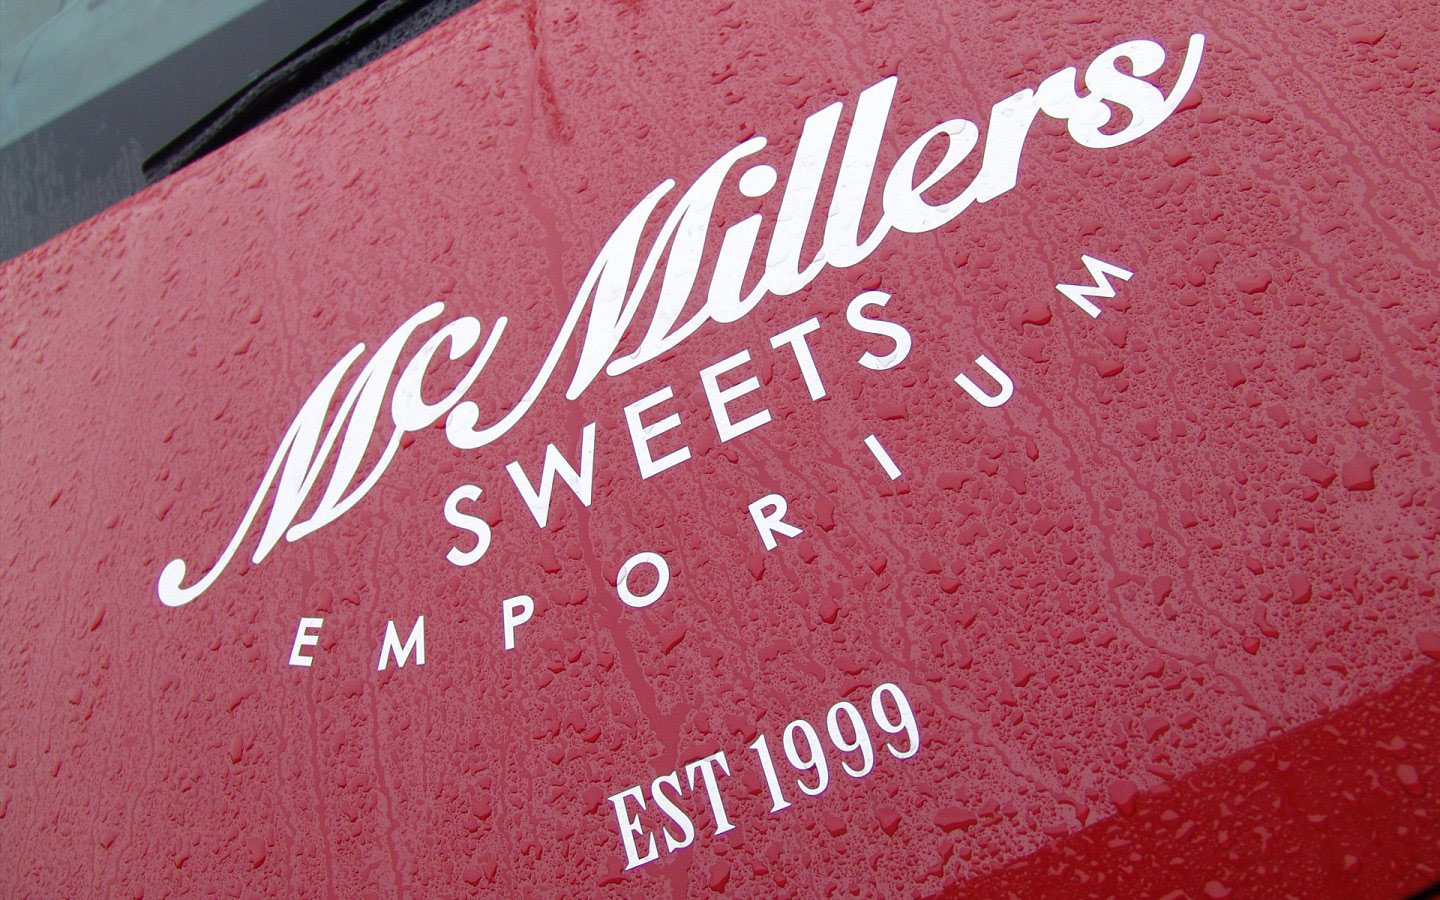 McMillers Sweets Emporium Logo Design Mono Simplified on Car